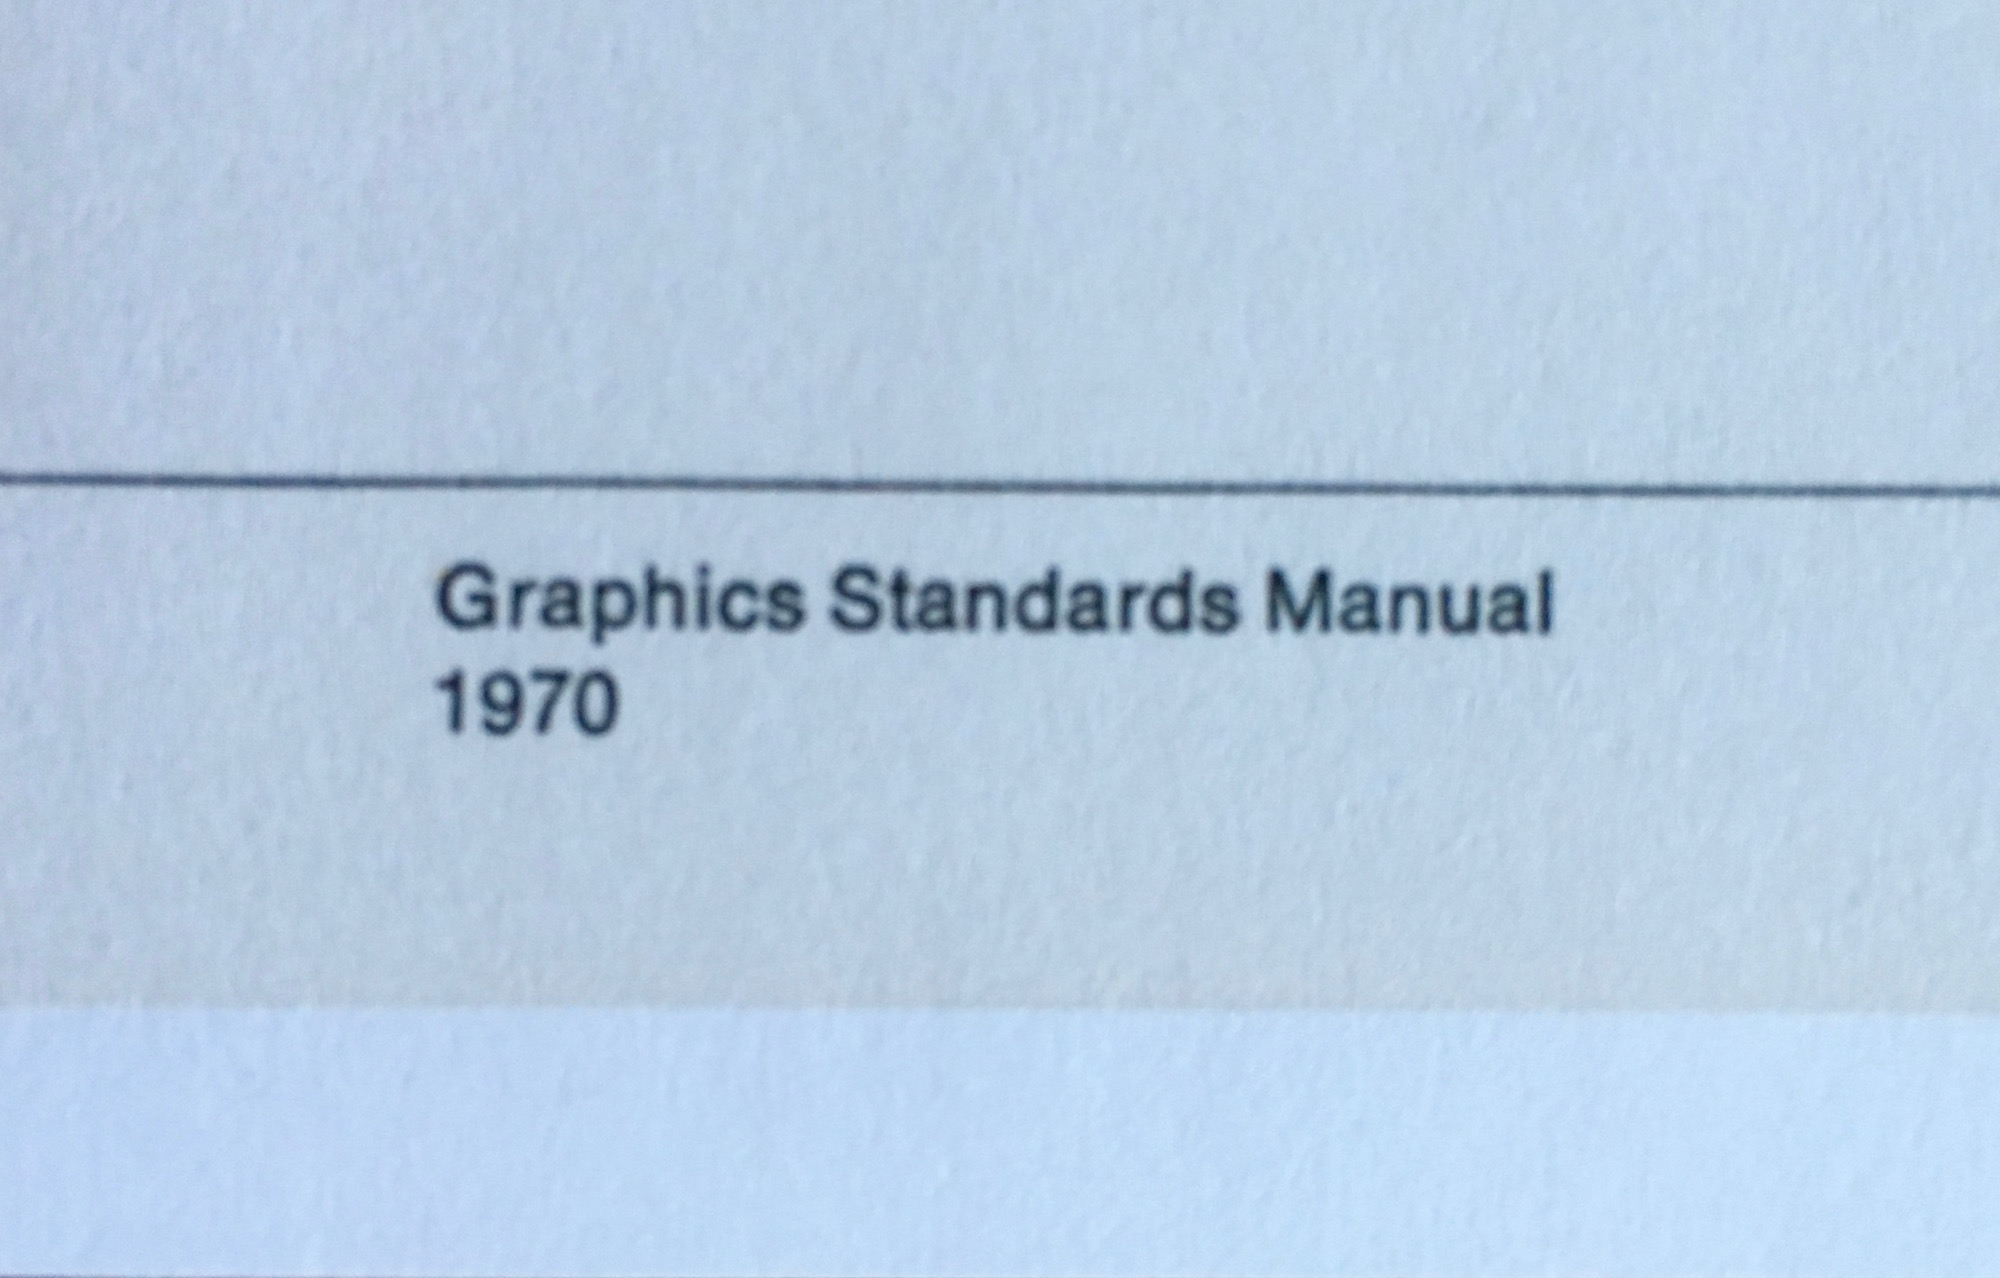 Graphics Standards Manual: 1970